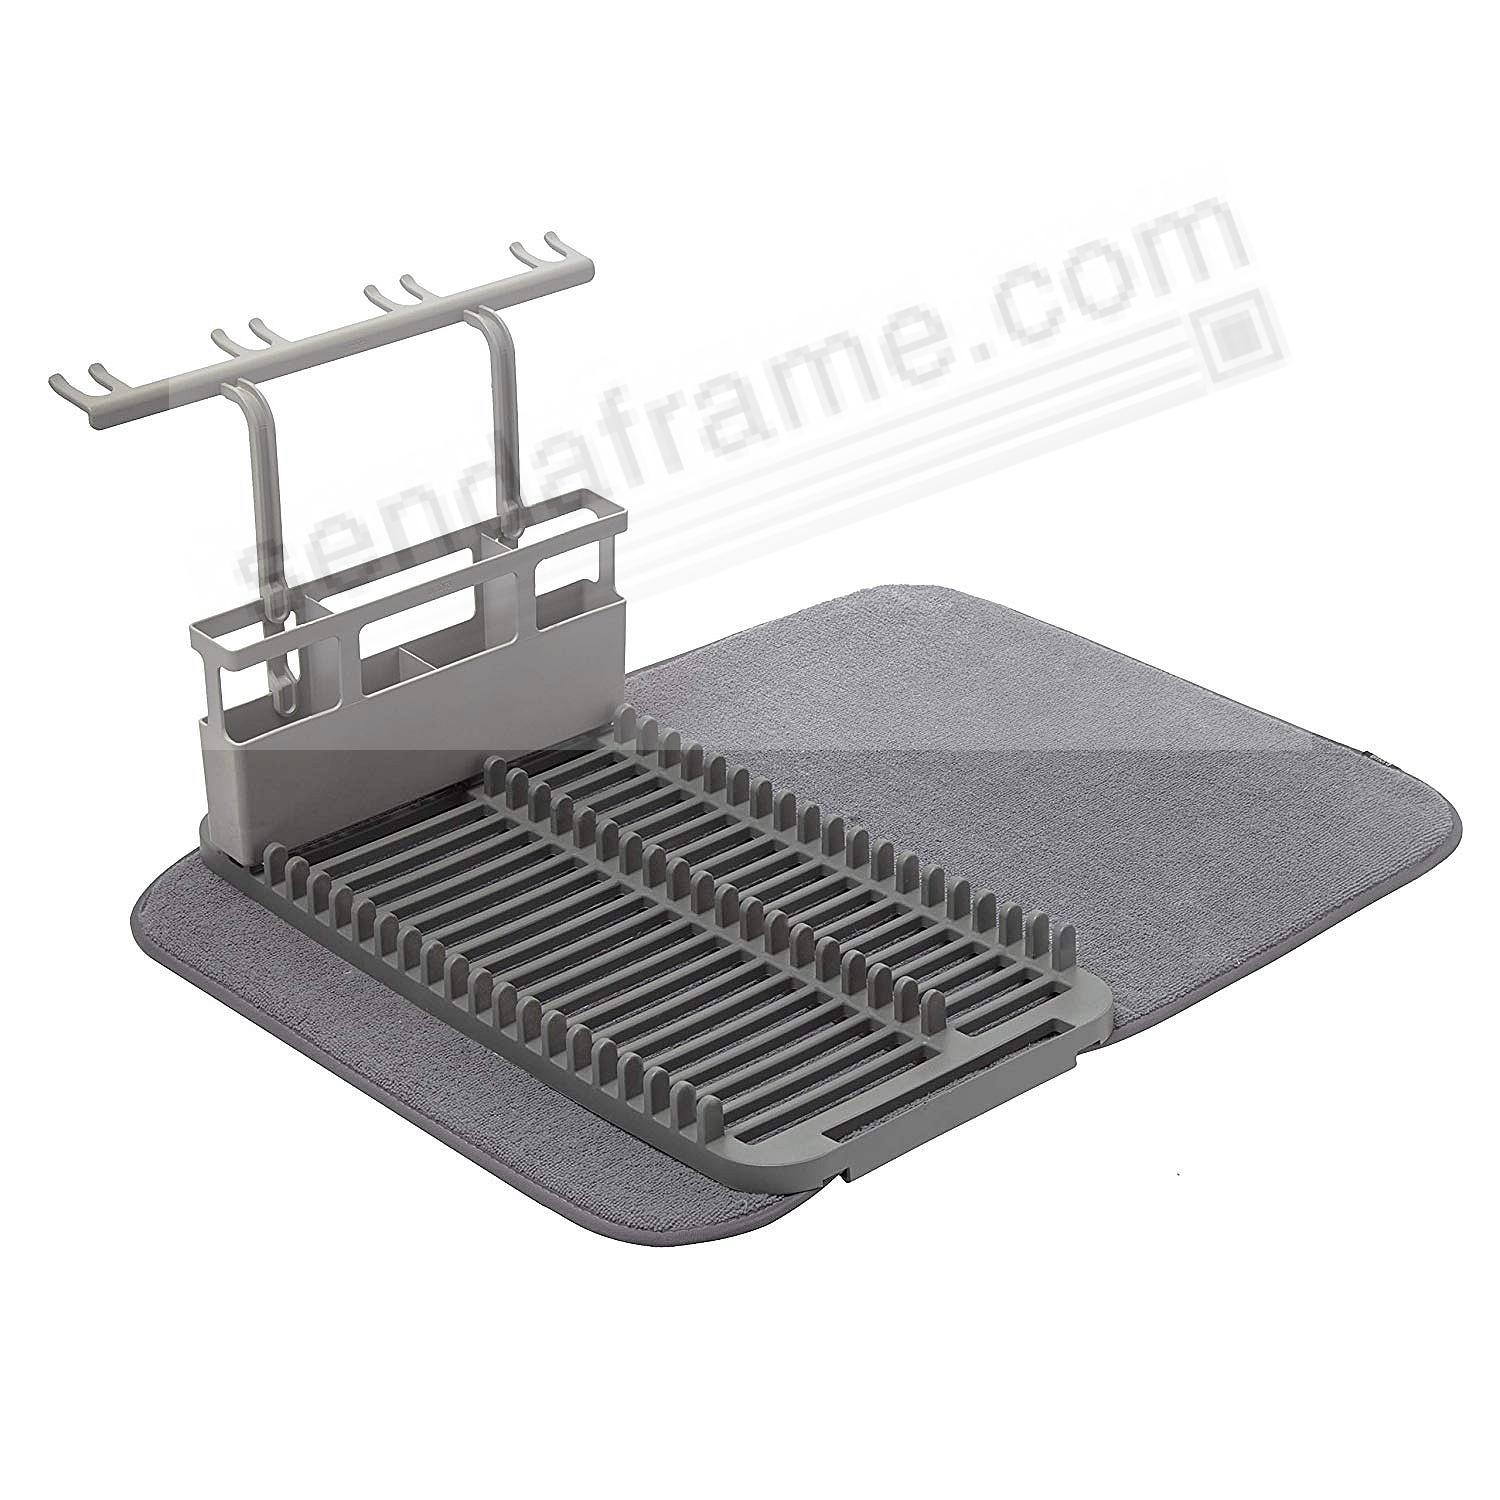 UDRY DISHRACK w/Drying Rack - CHARCOAL by Umbra®